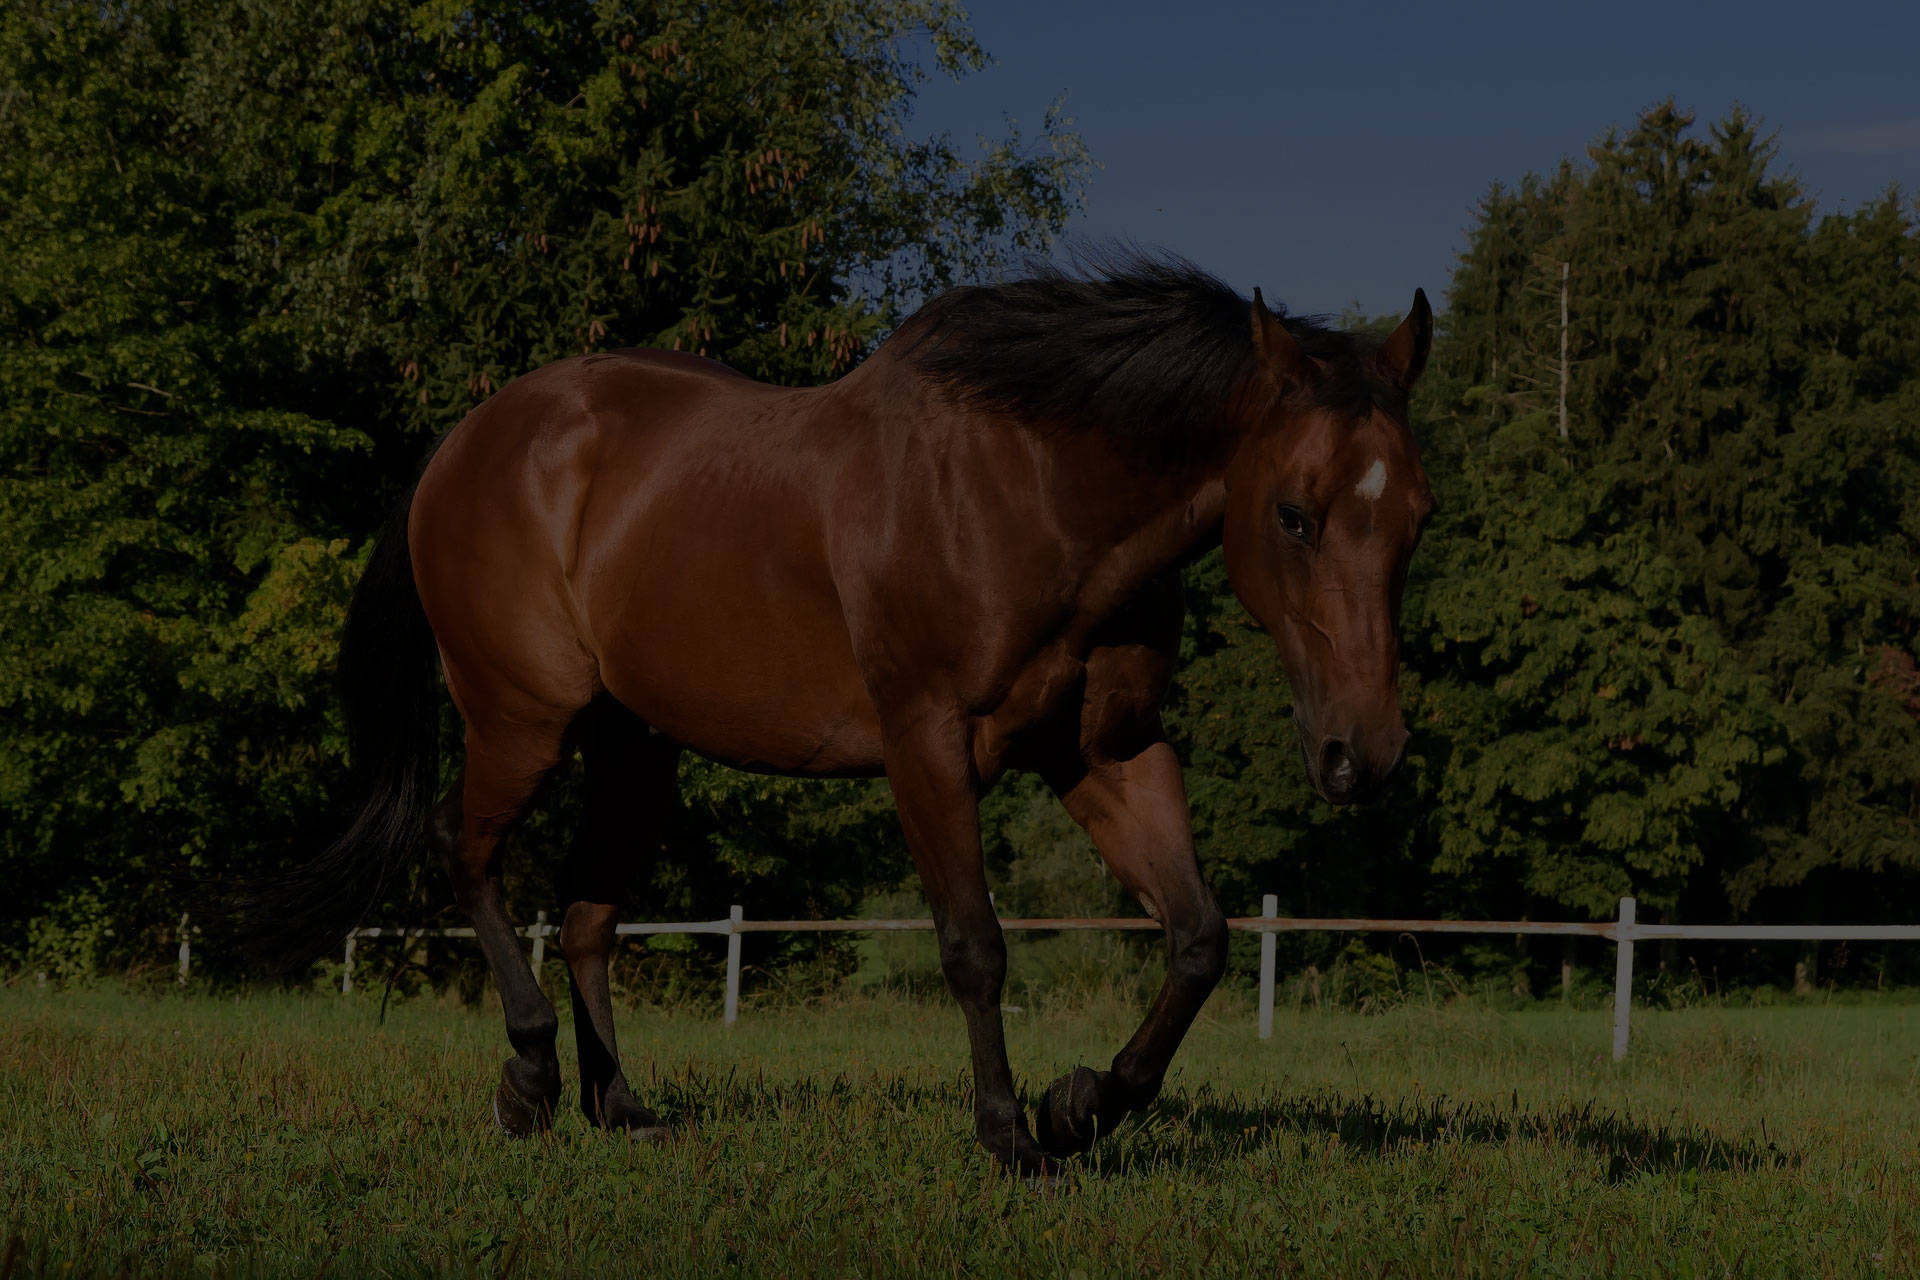 horse-quarterhorse-brown-pasture